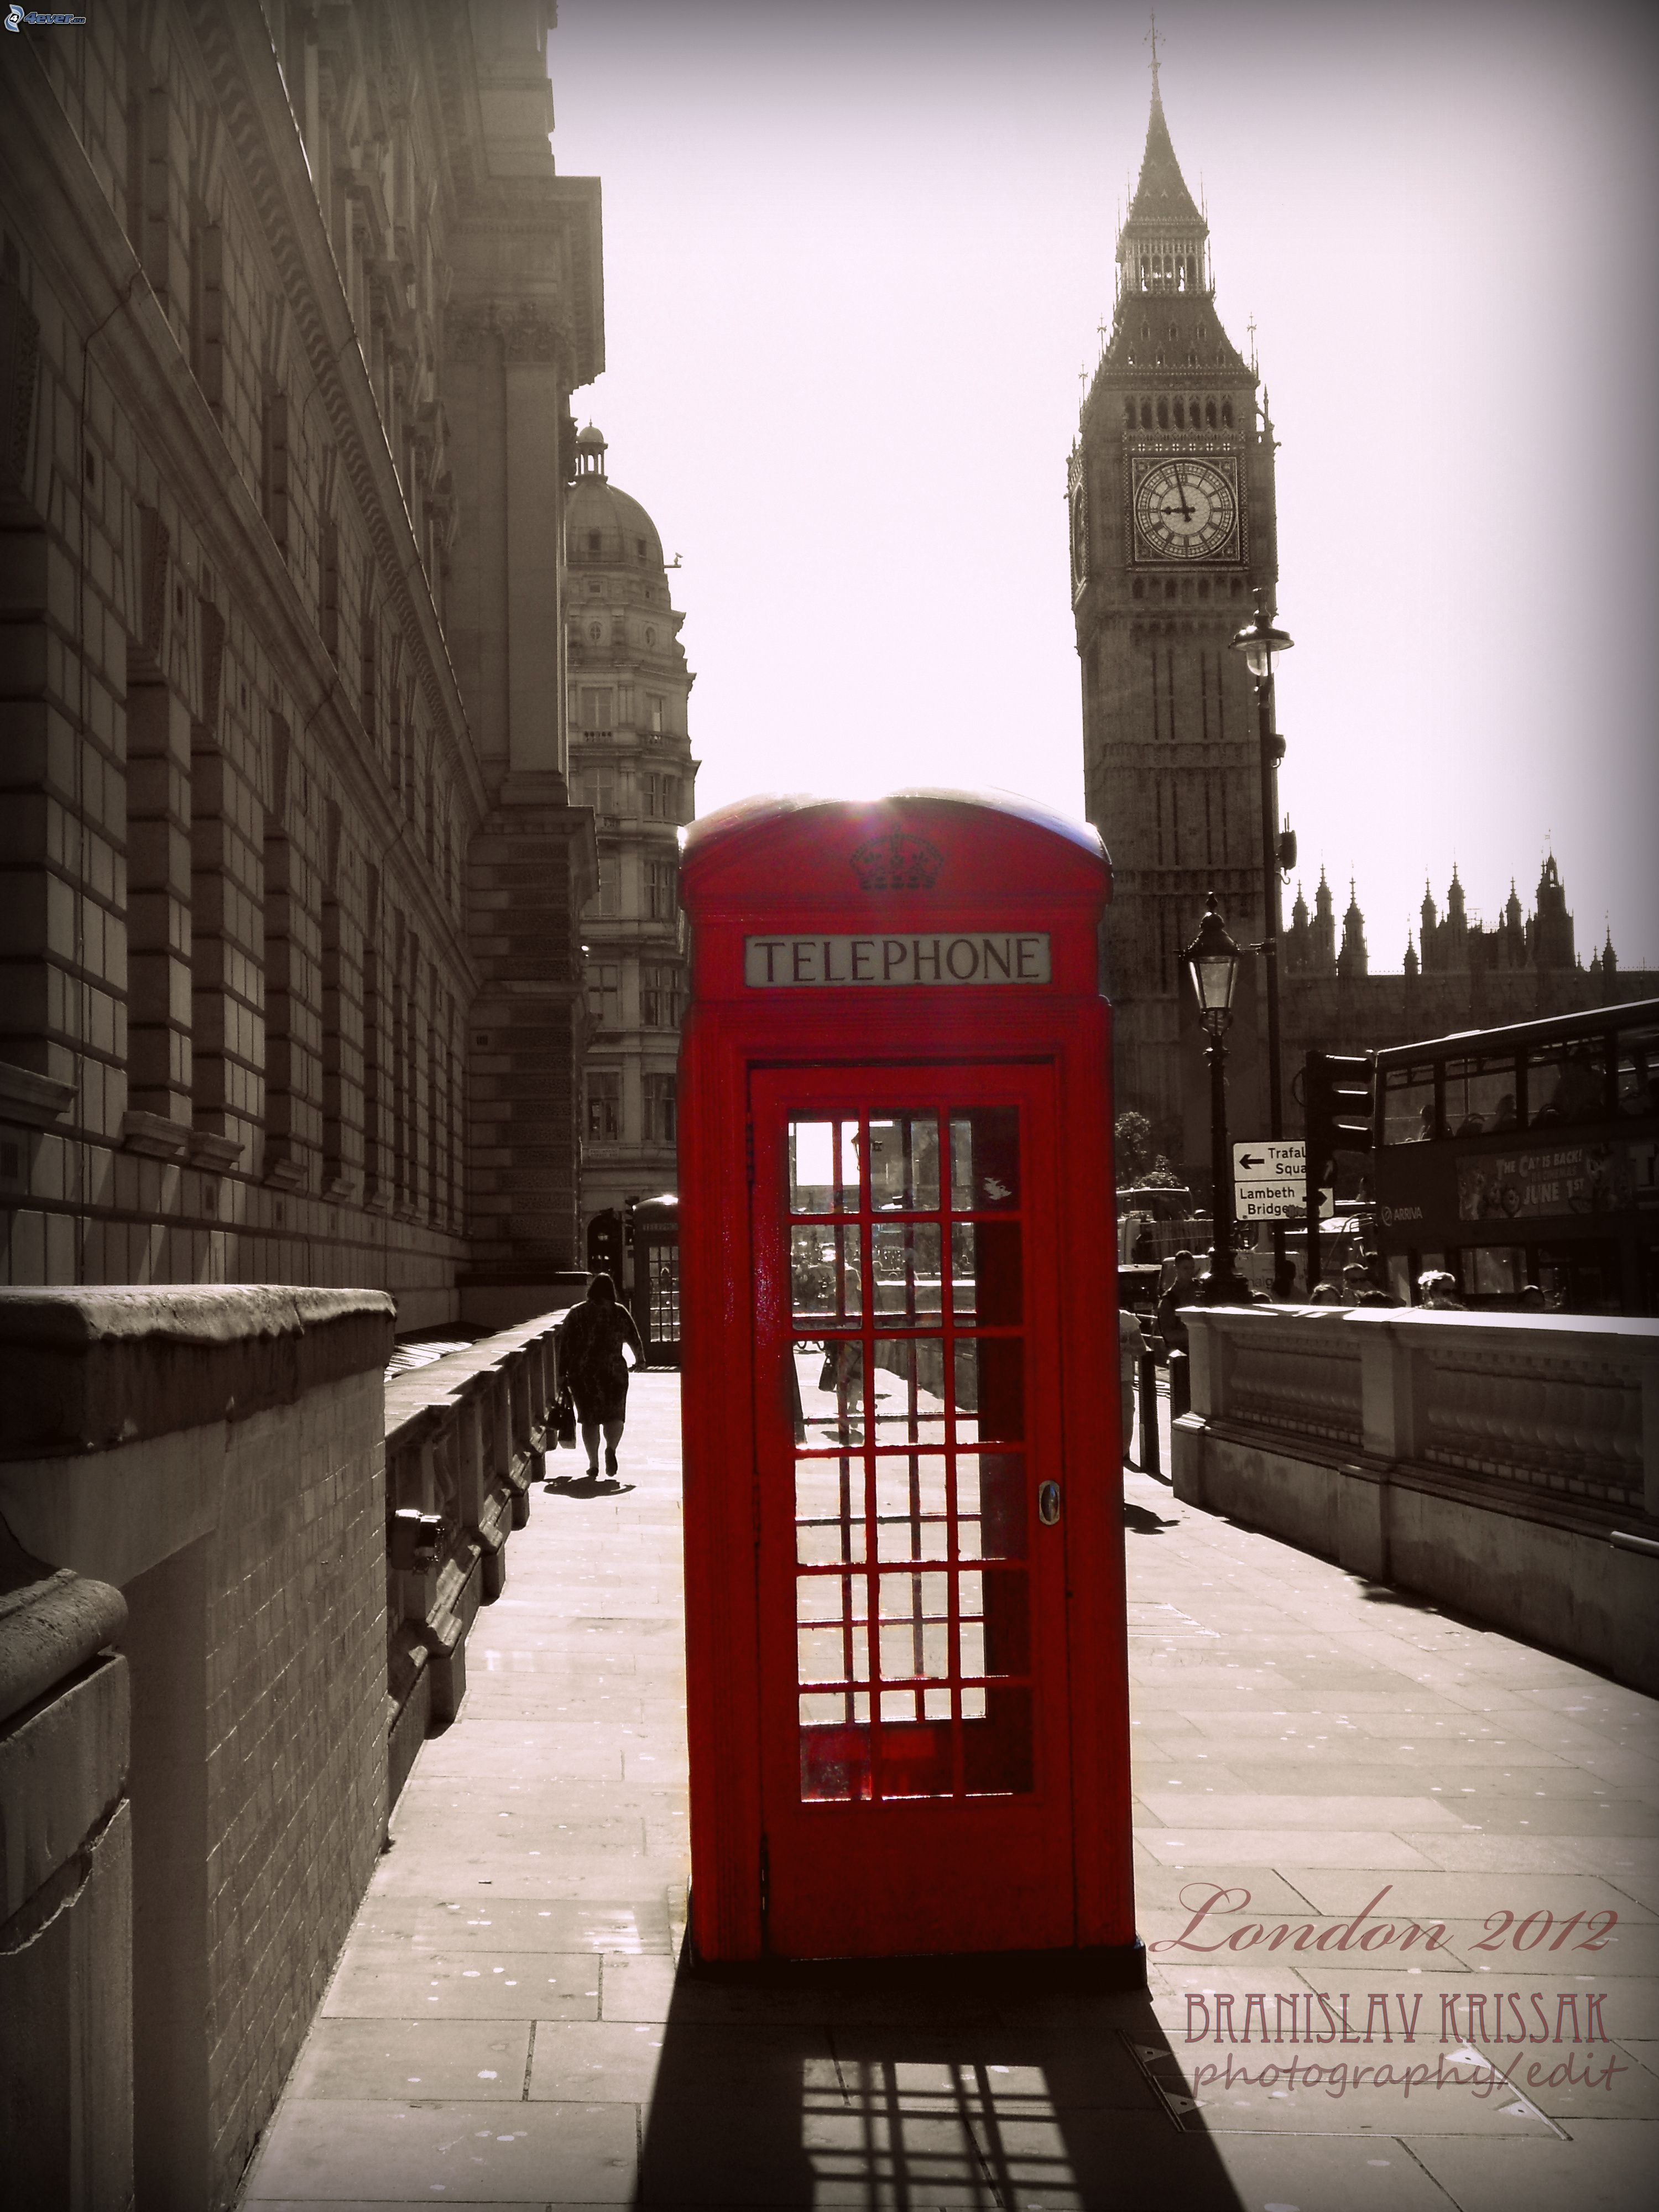 [pictures.4ever.eu] telephone booth, london 158963